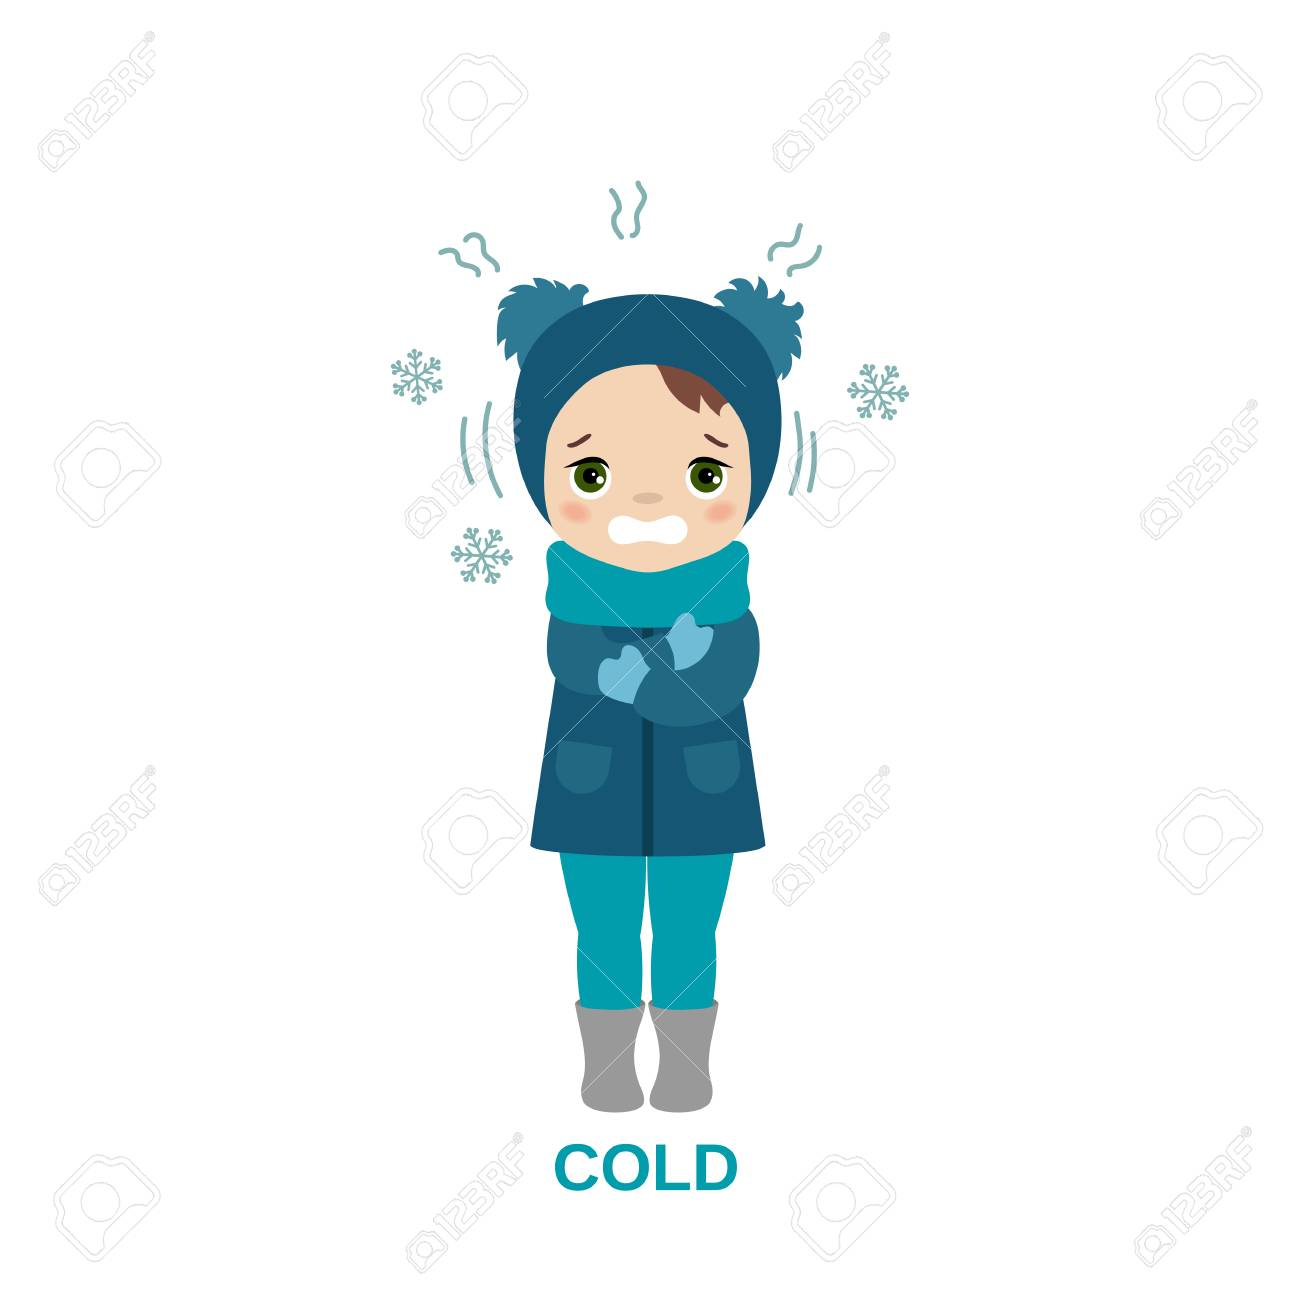 freezing and shivering young girl on winter cold cartoon style